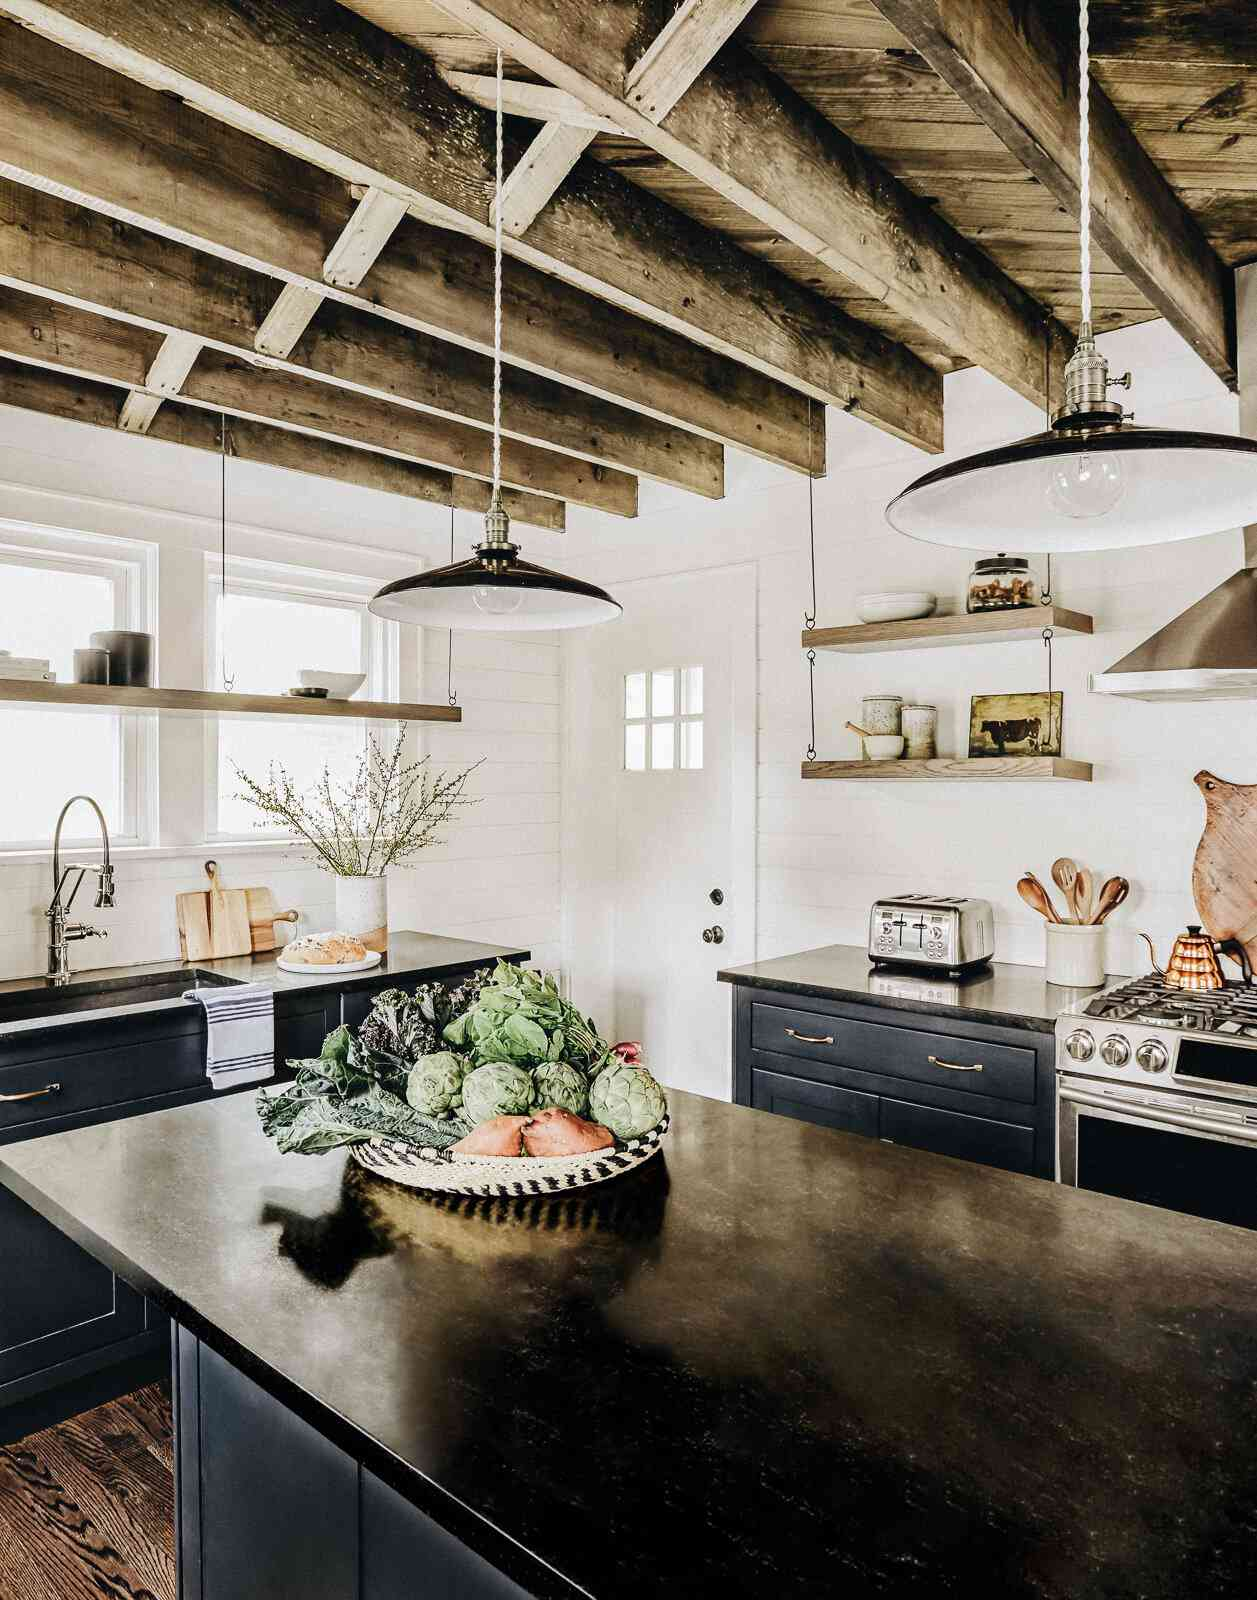 Kitchen with exposed wood beam ceiling, expansive kitchen island, dark-colored cabinetry